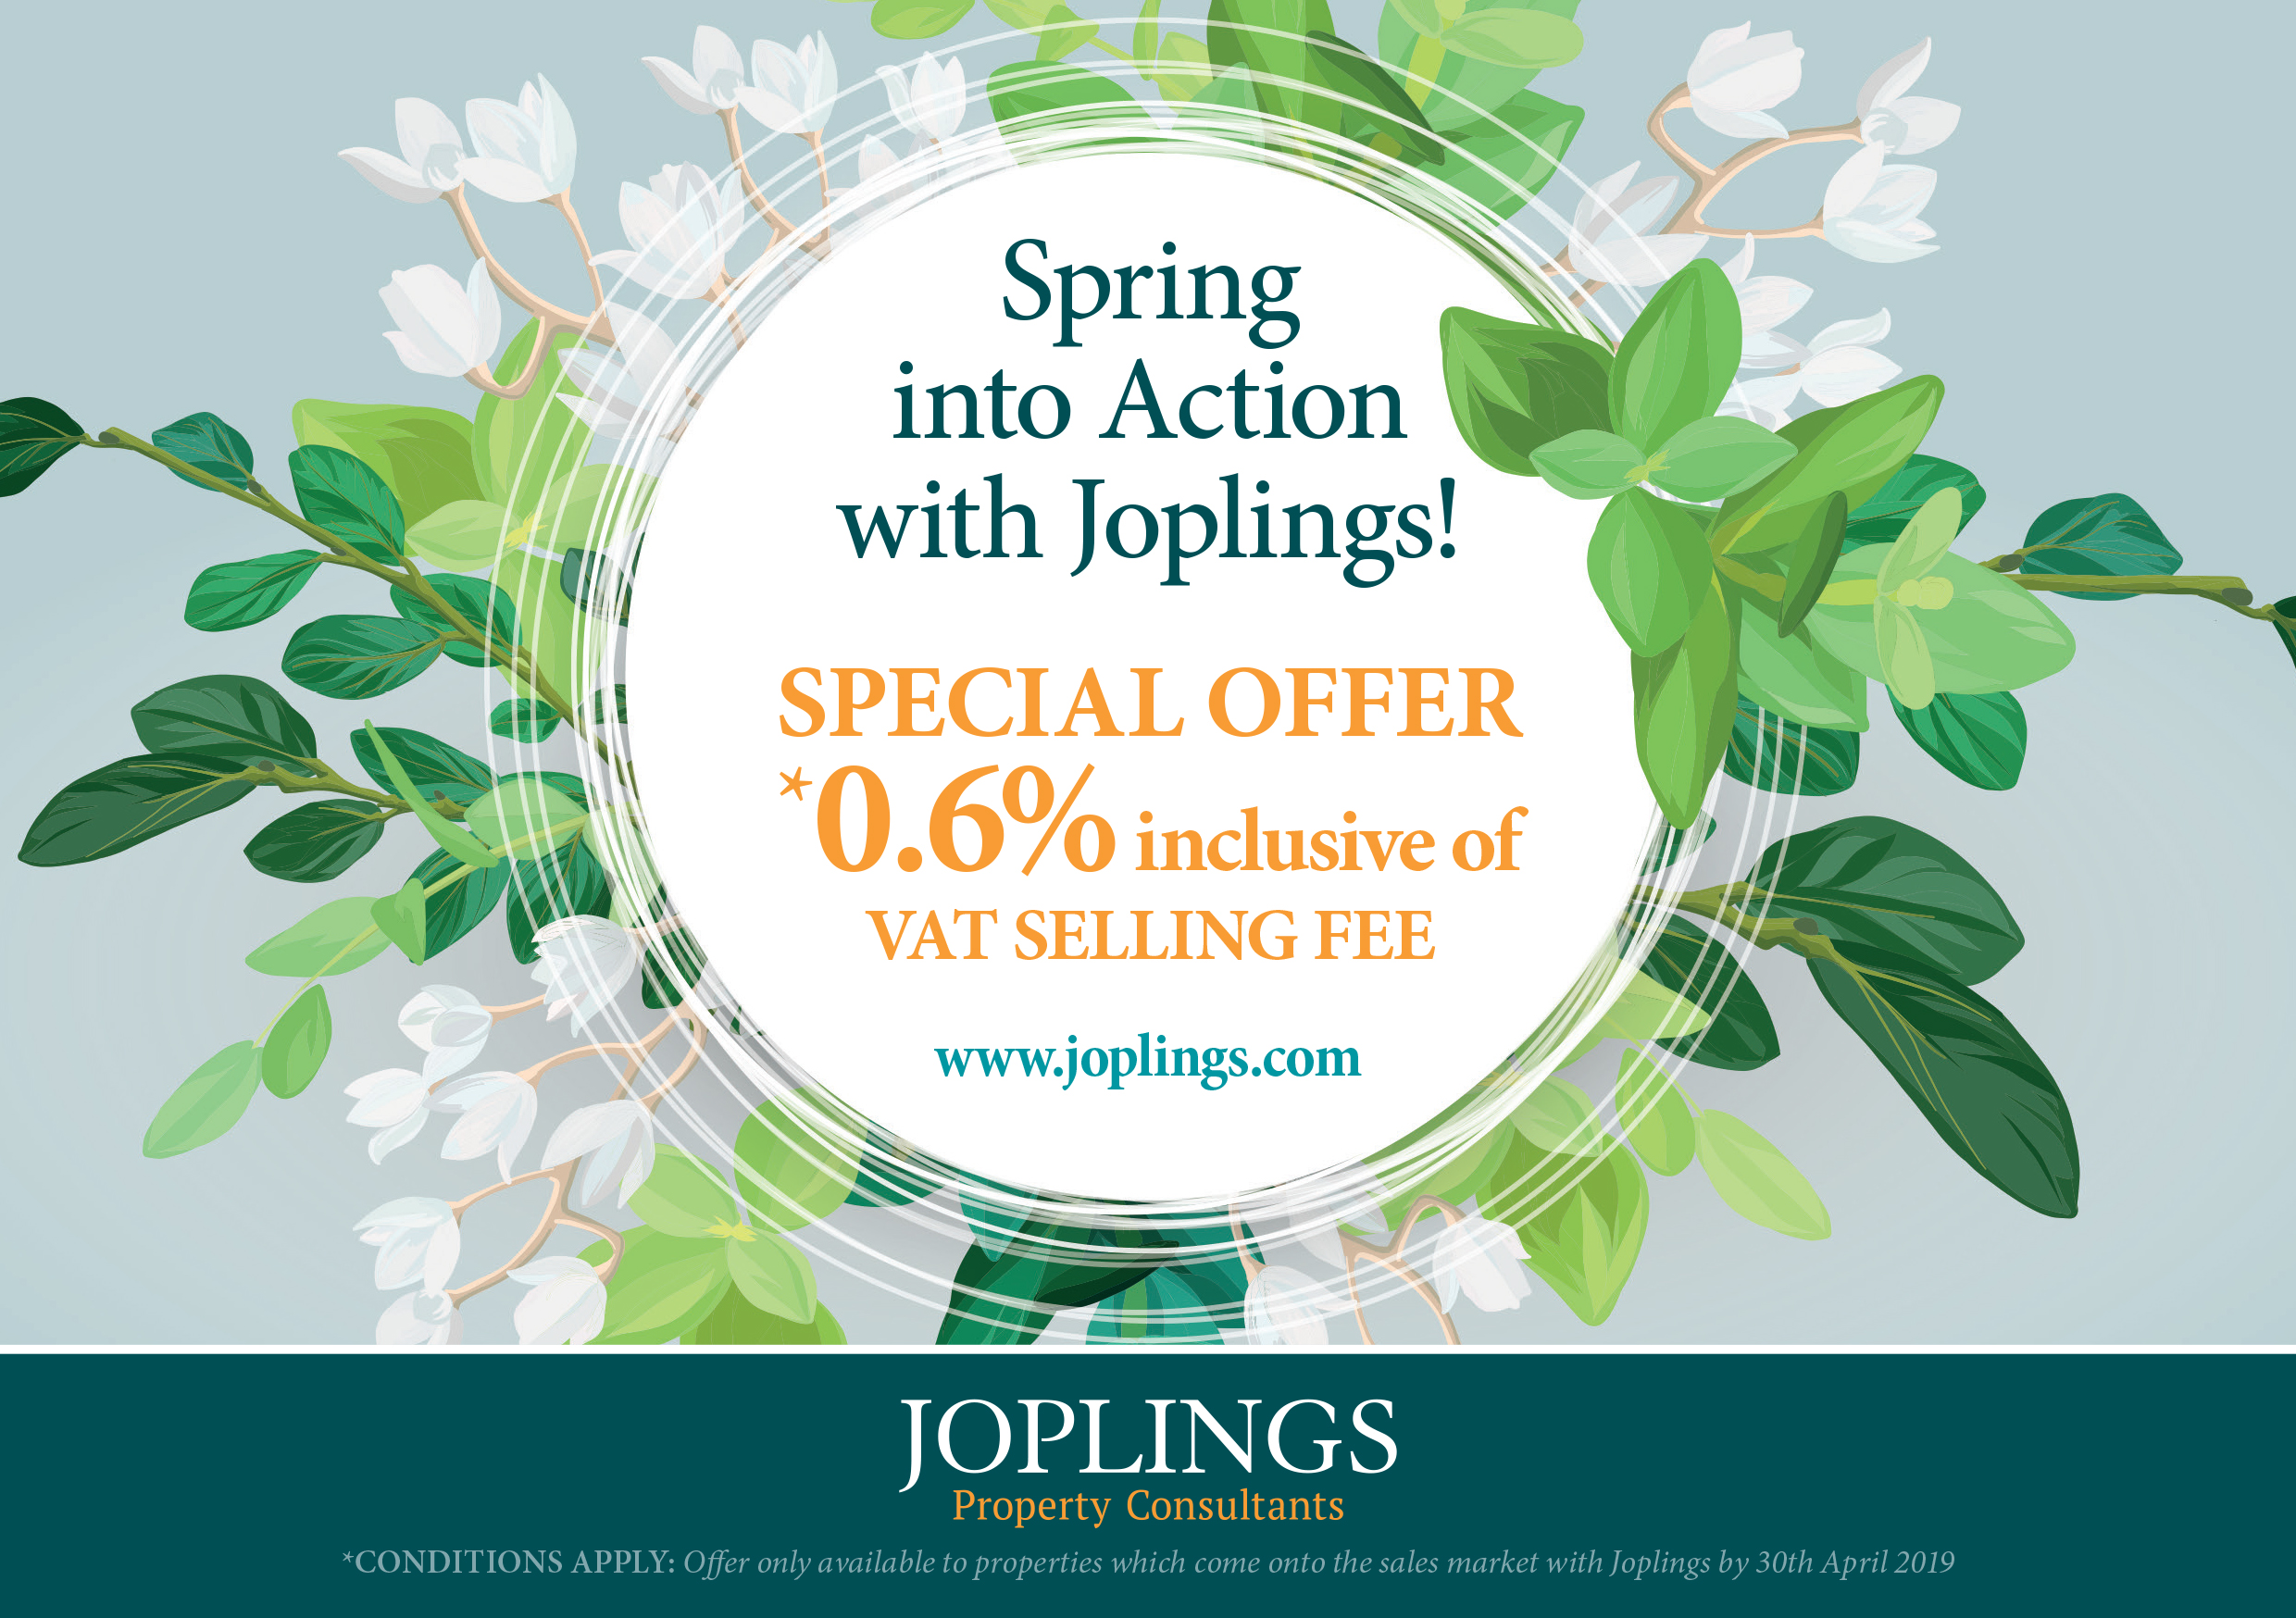 News - Joplings - Property Consultants, Estate Agents and